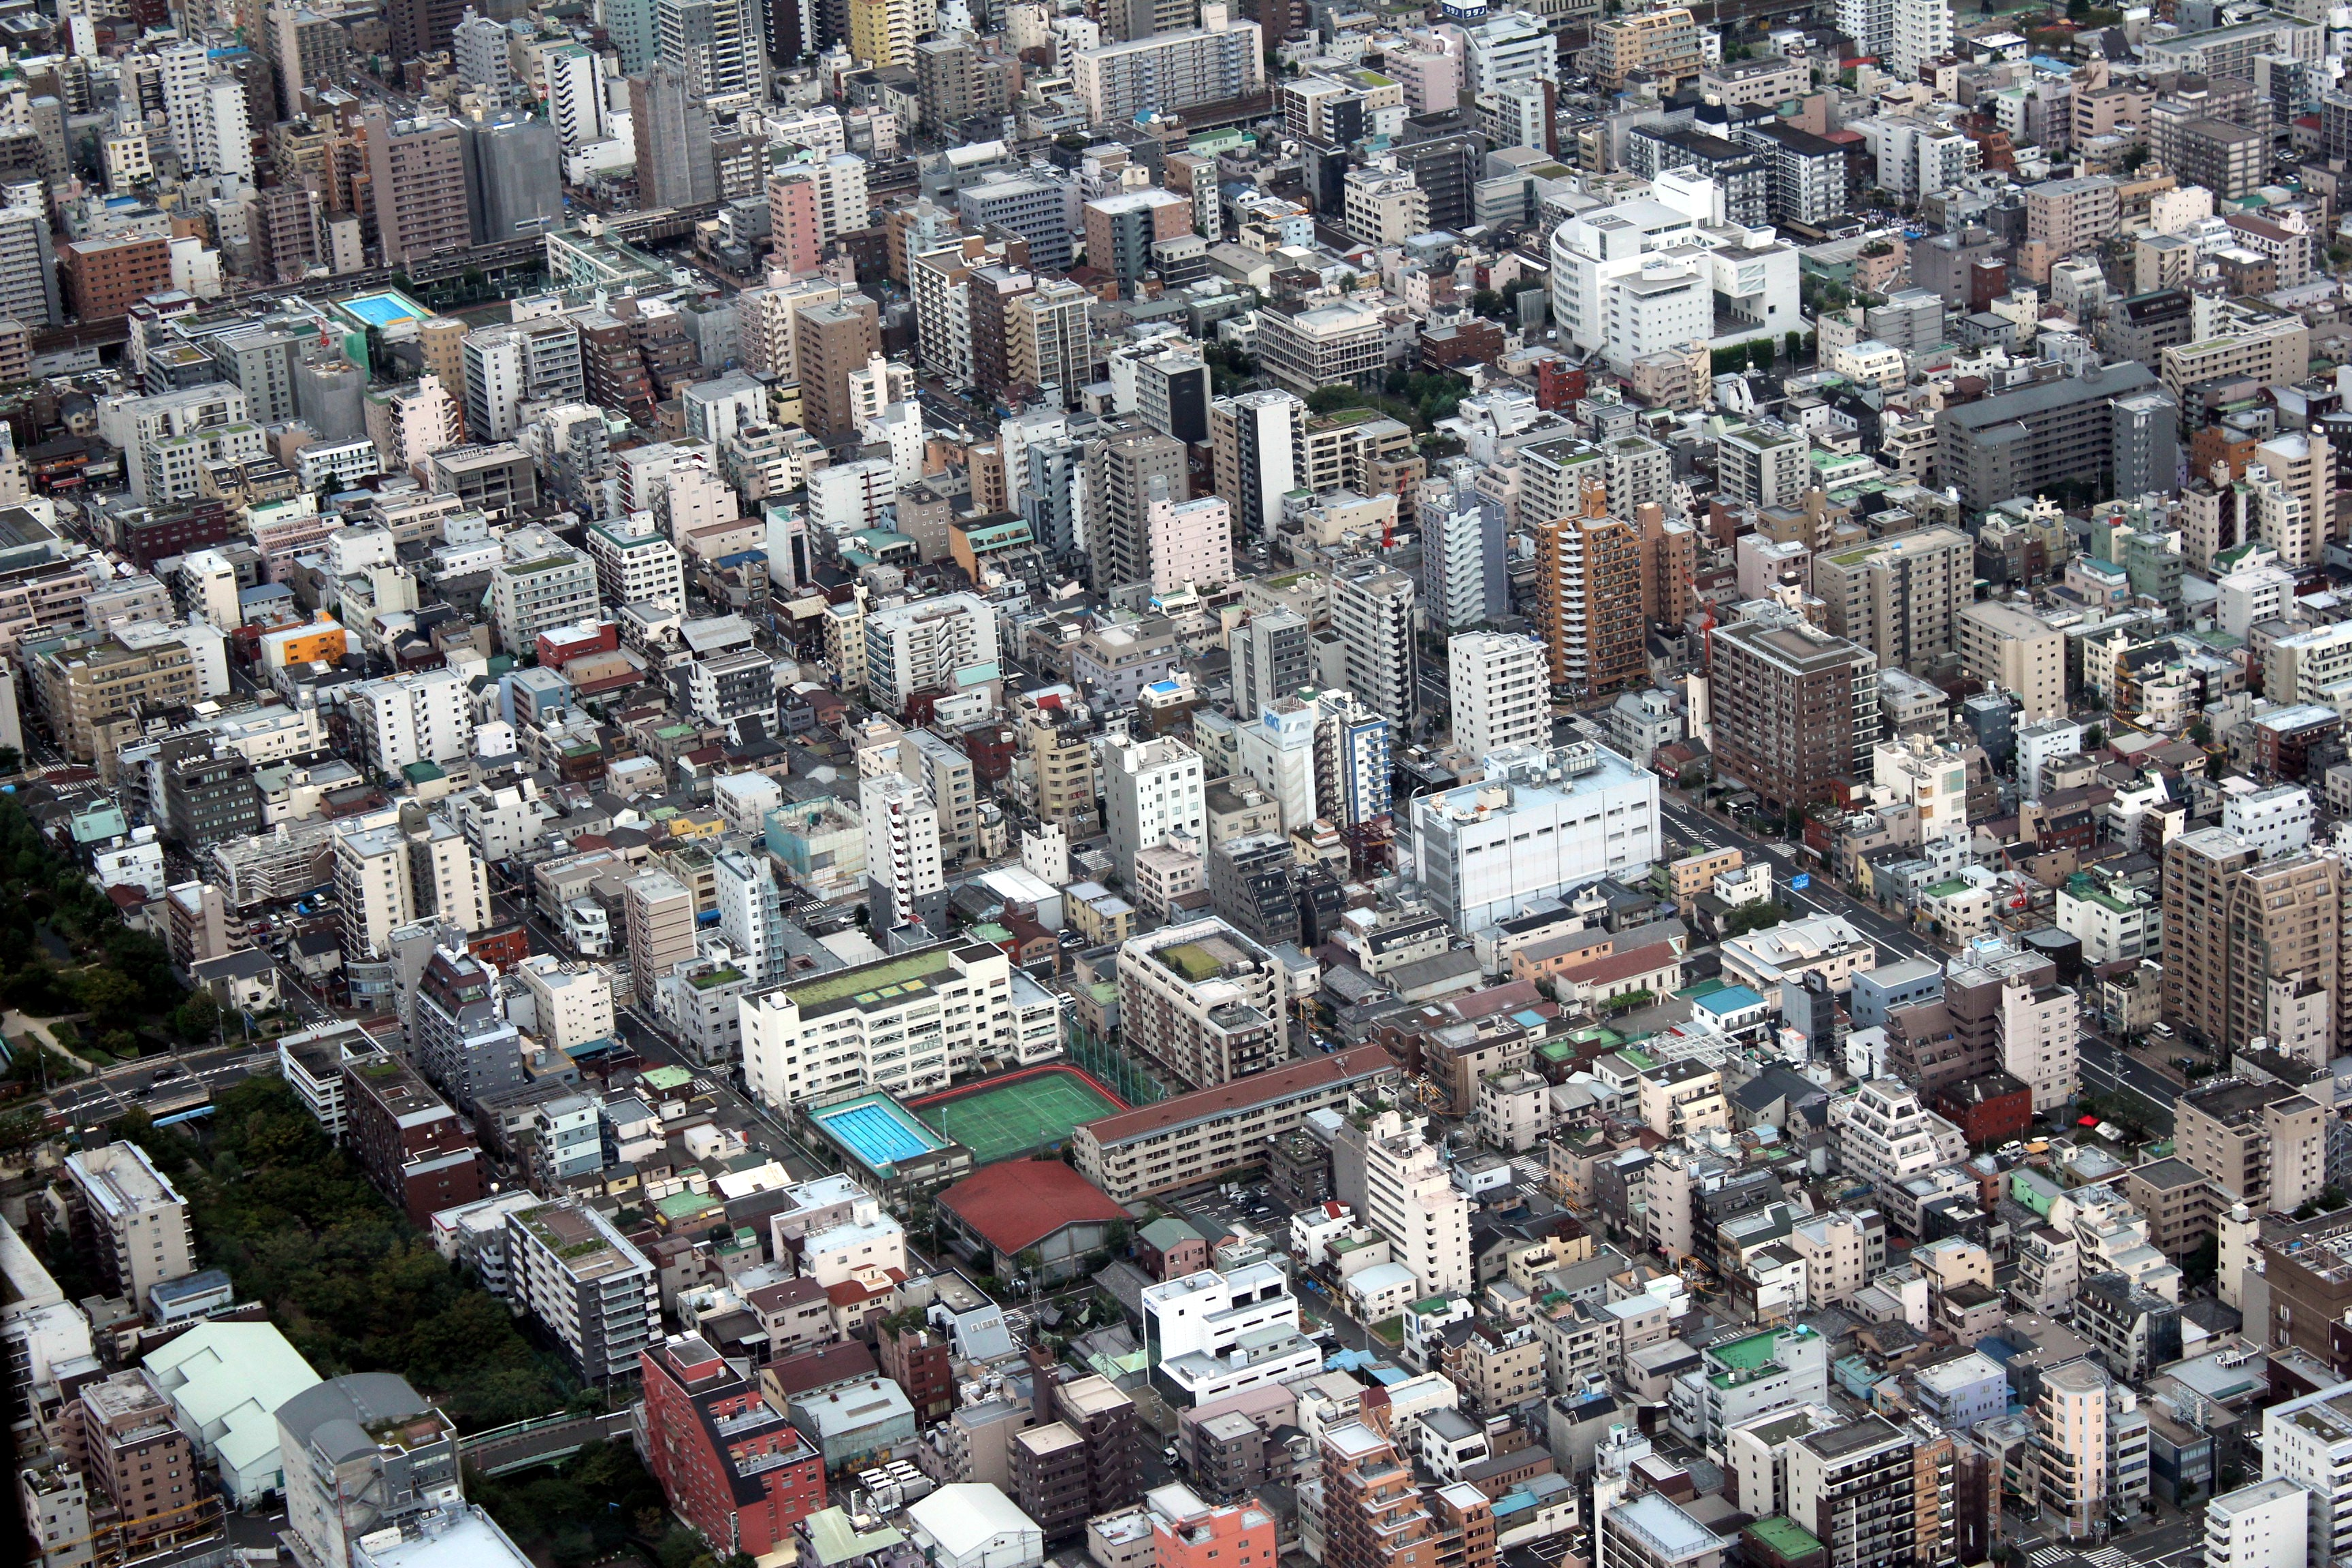 aerial photo of assorted-color concrete city high rise buildings